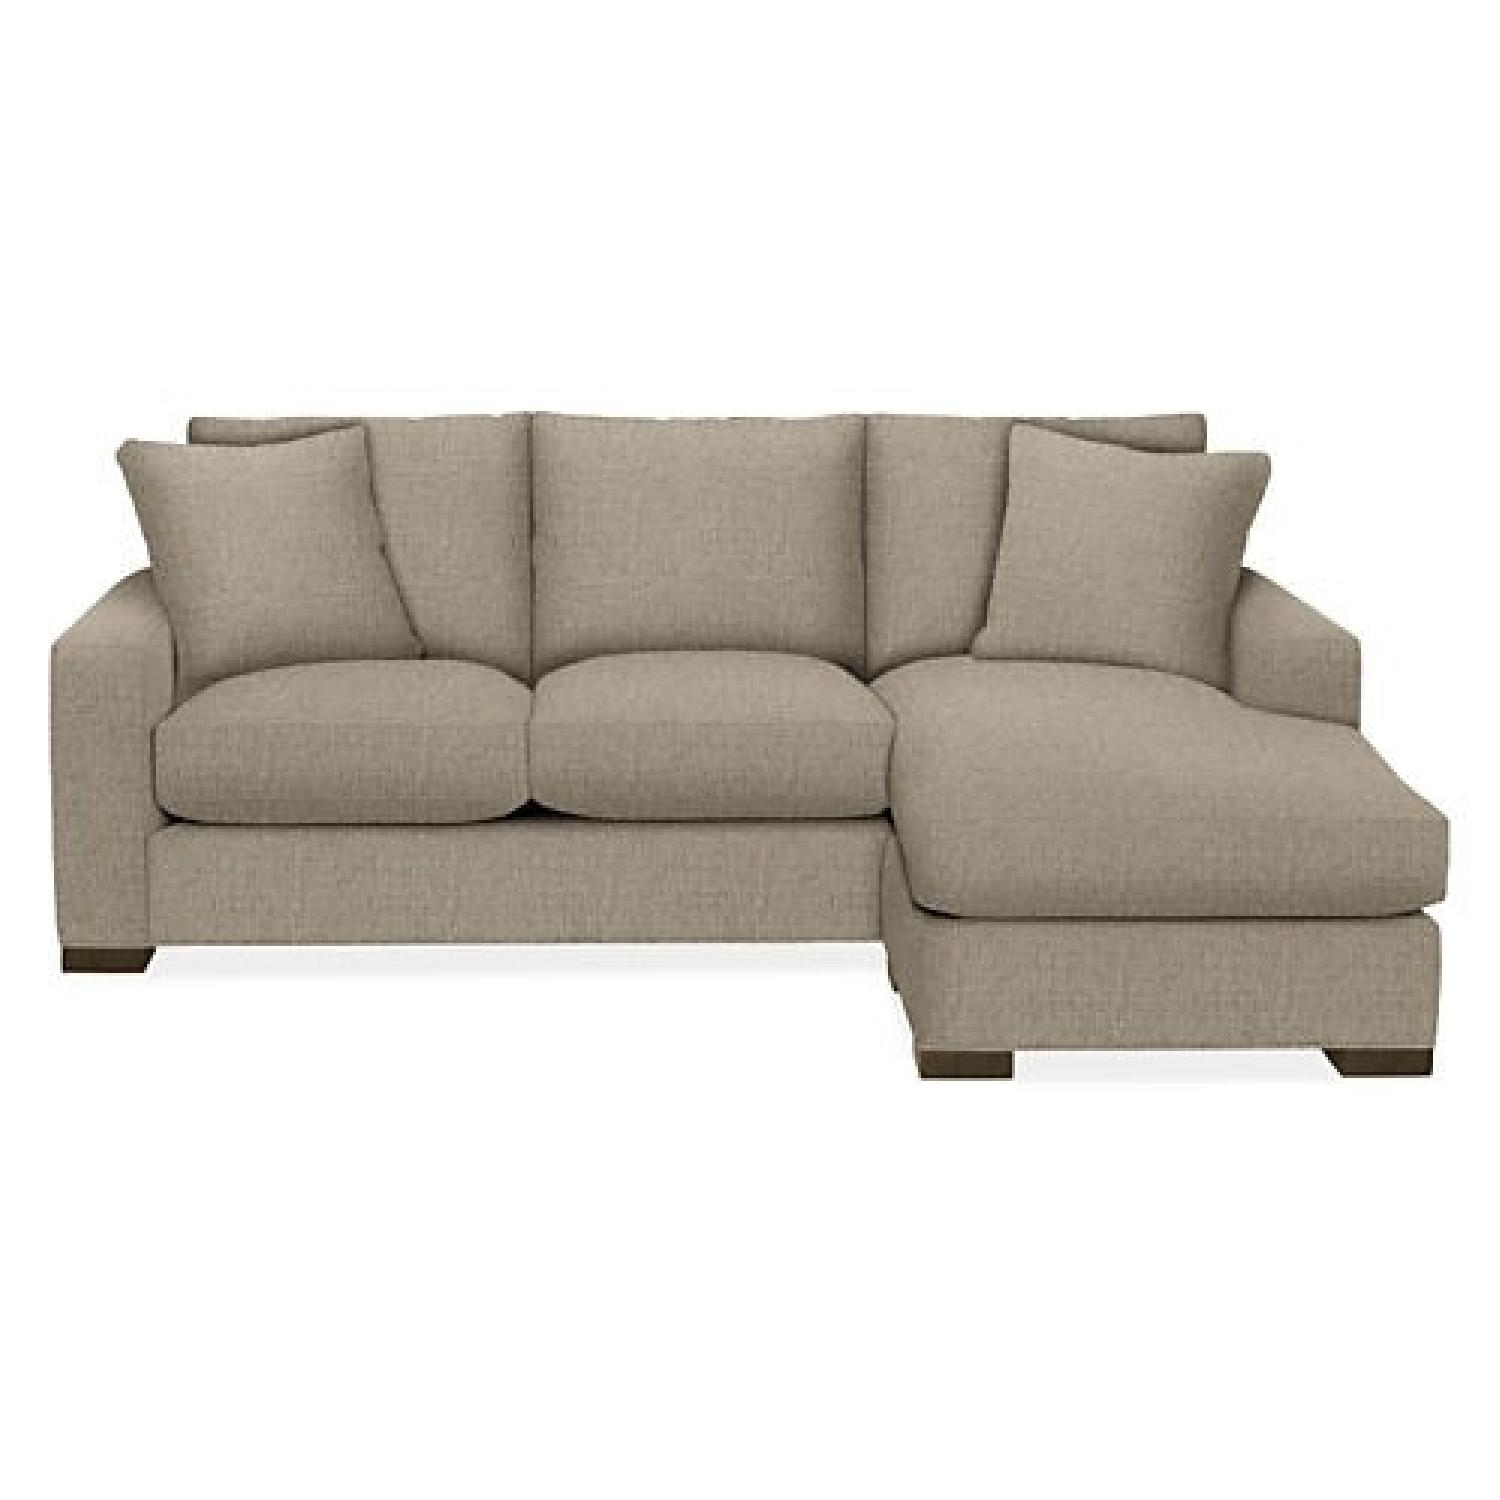 Room & Board Sectional Sofa w/ Reversible Chaise